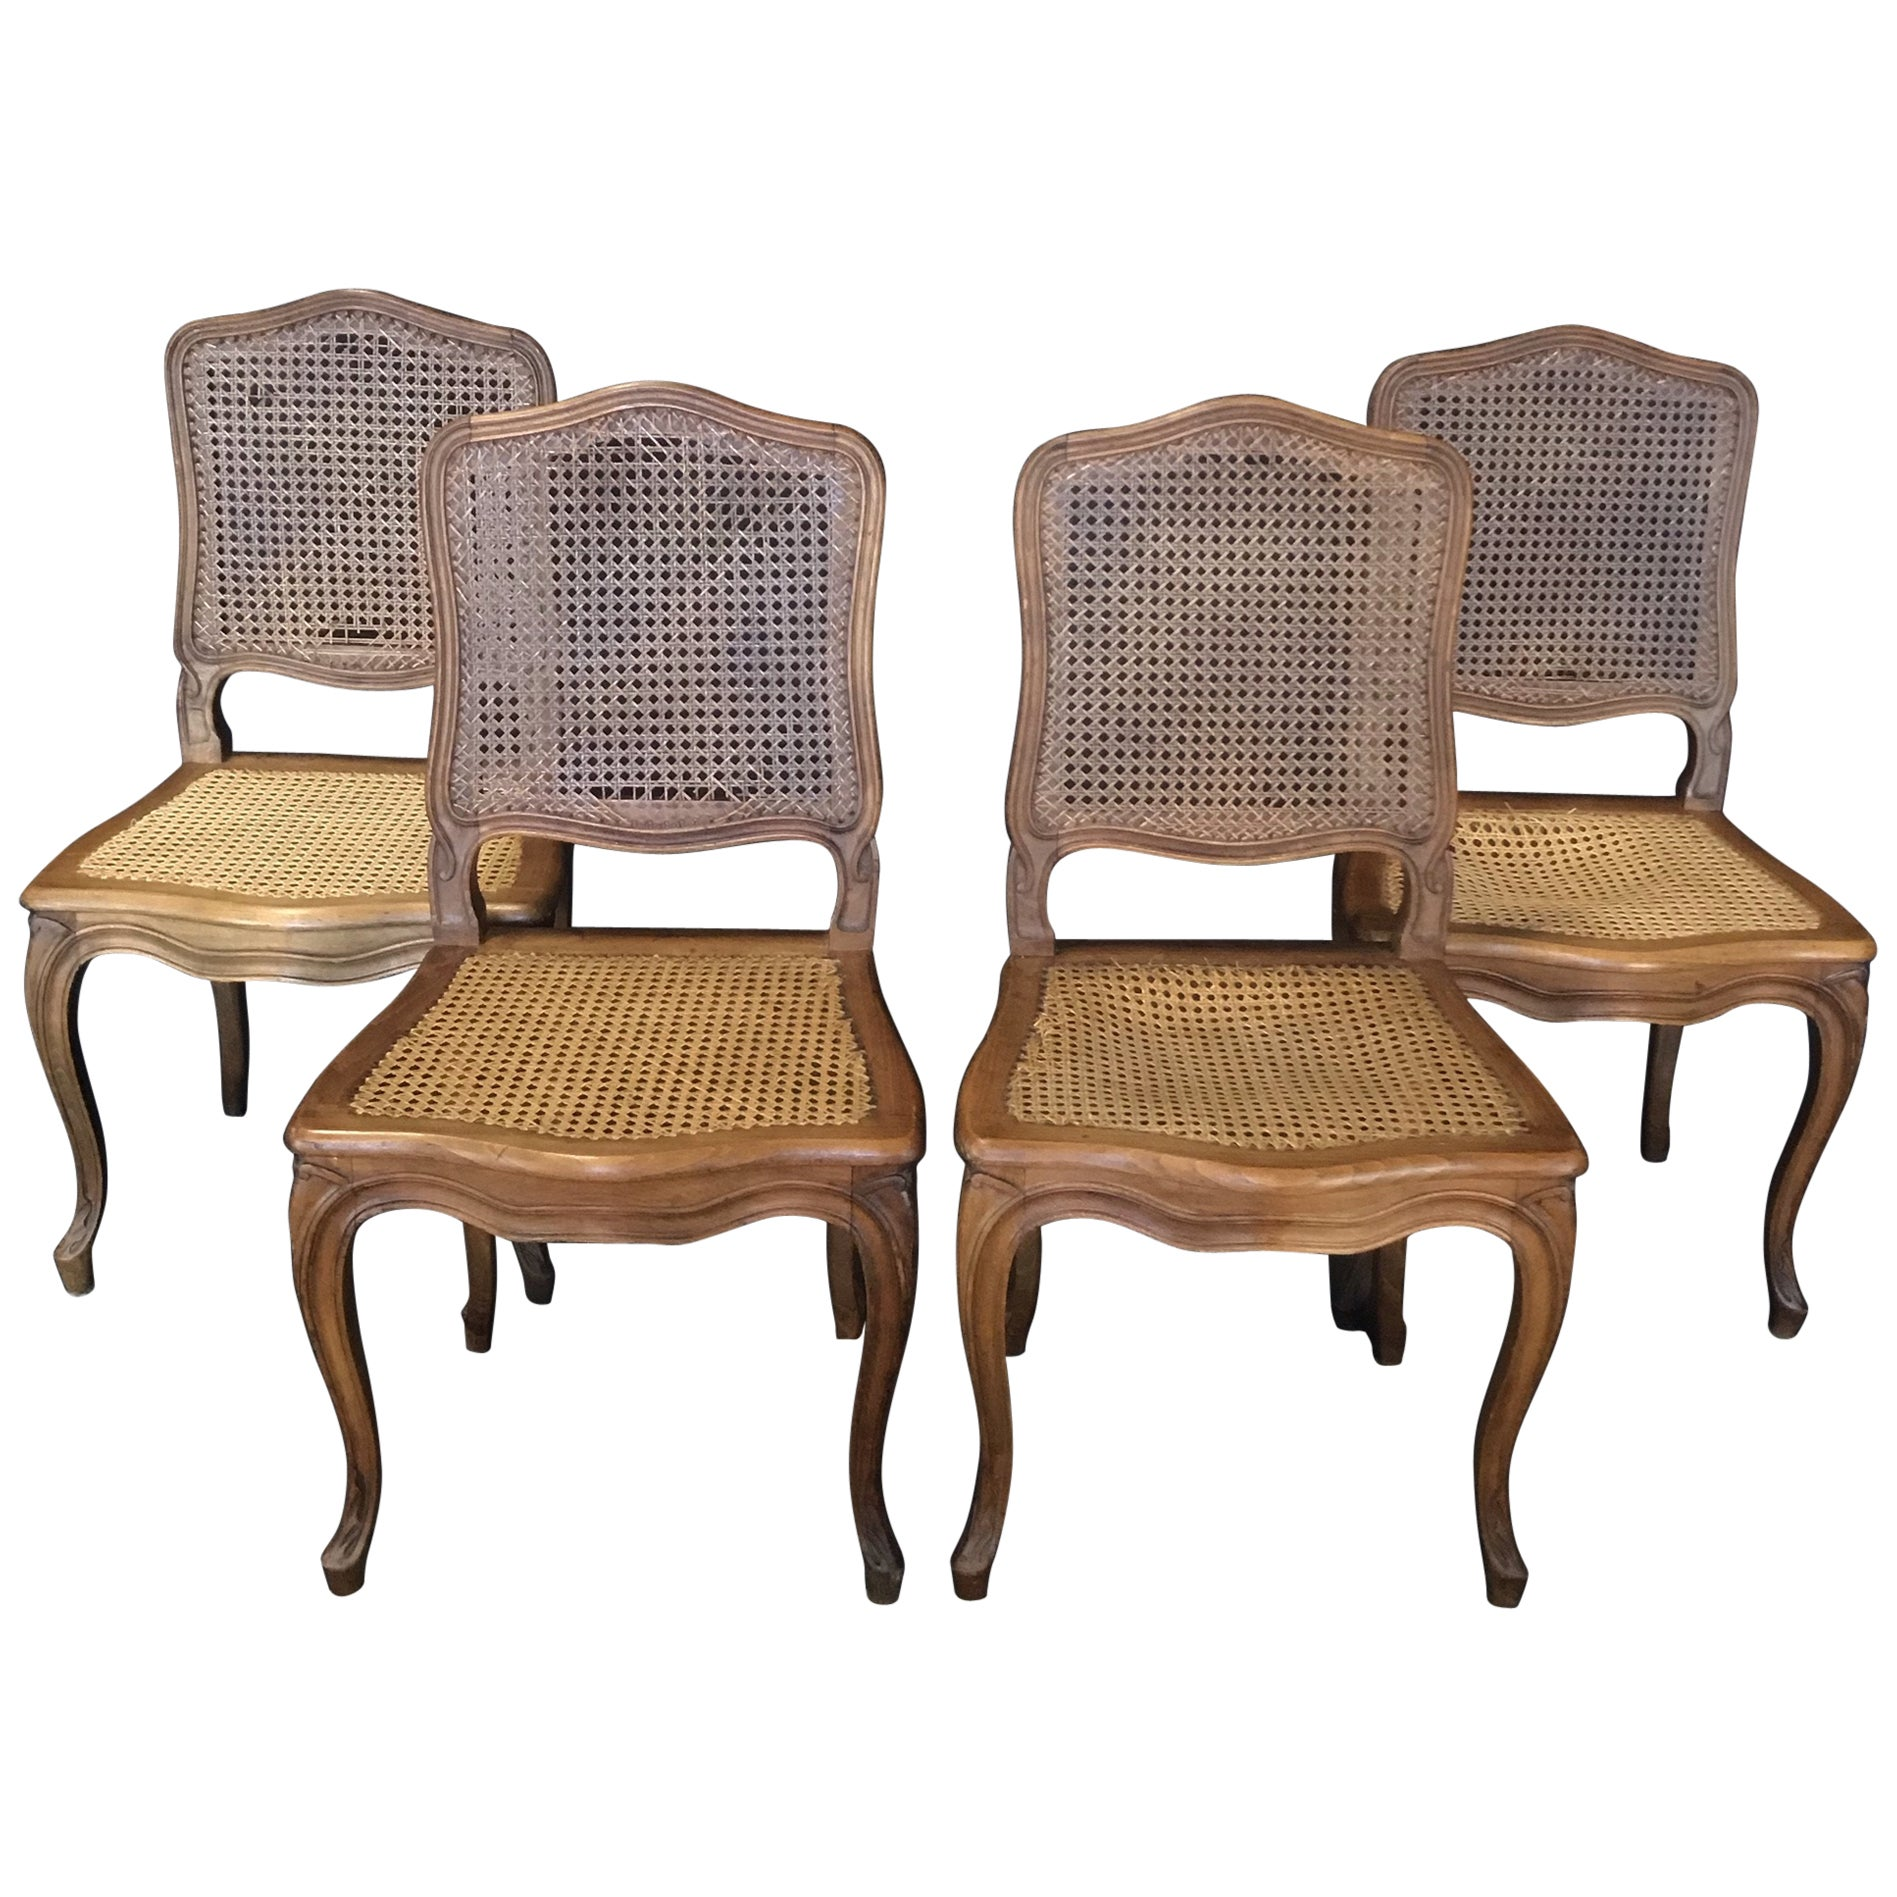 Set of 4 Classic Caned French Provincial Louis XV Style Walnut Dining Chairs